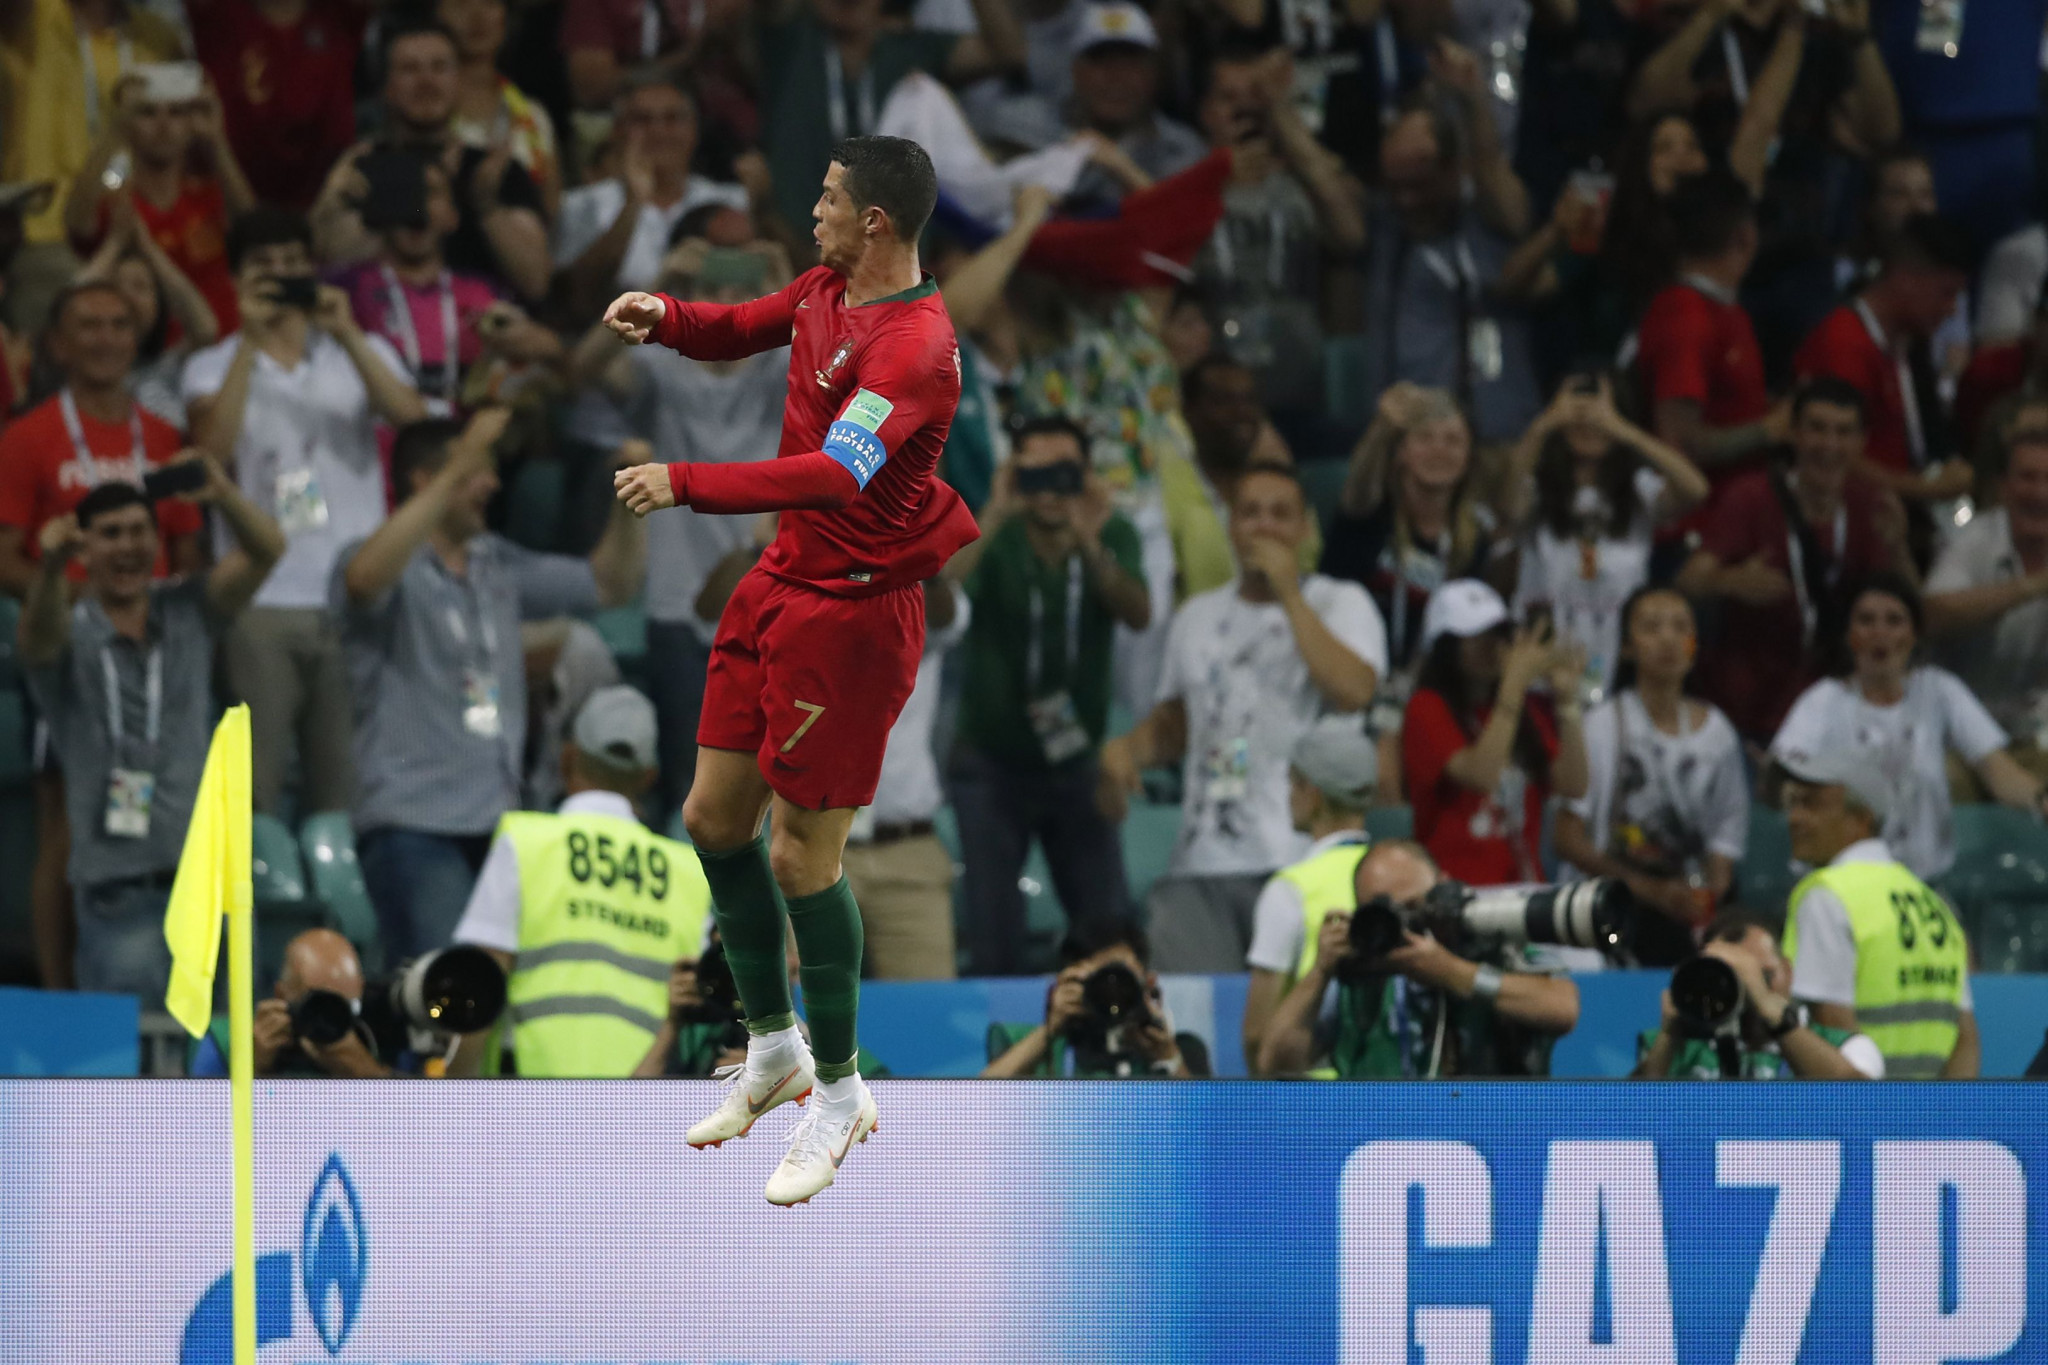 Late goals and hat-tricks as FIFA World Cup continues to excite